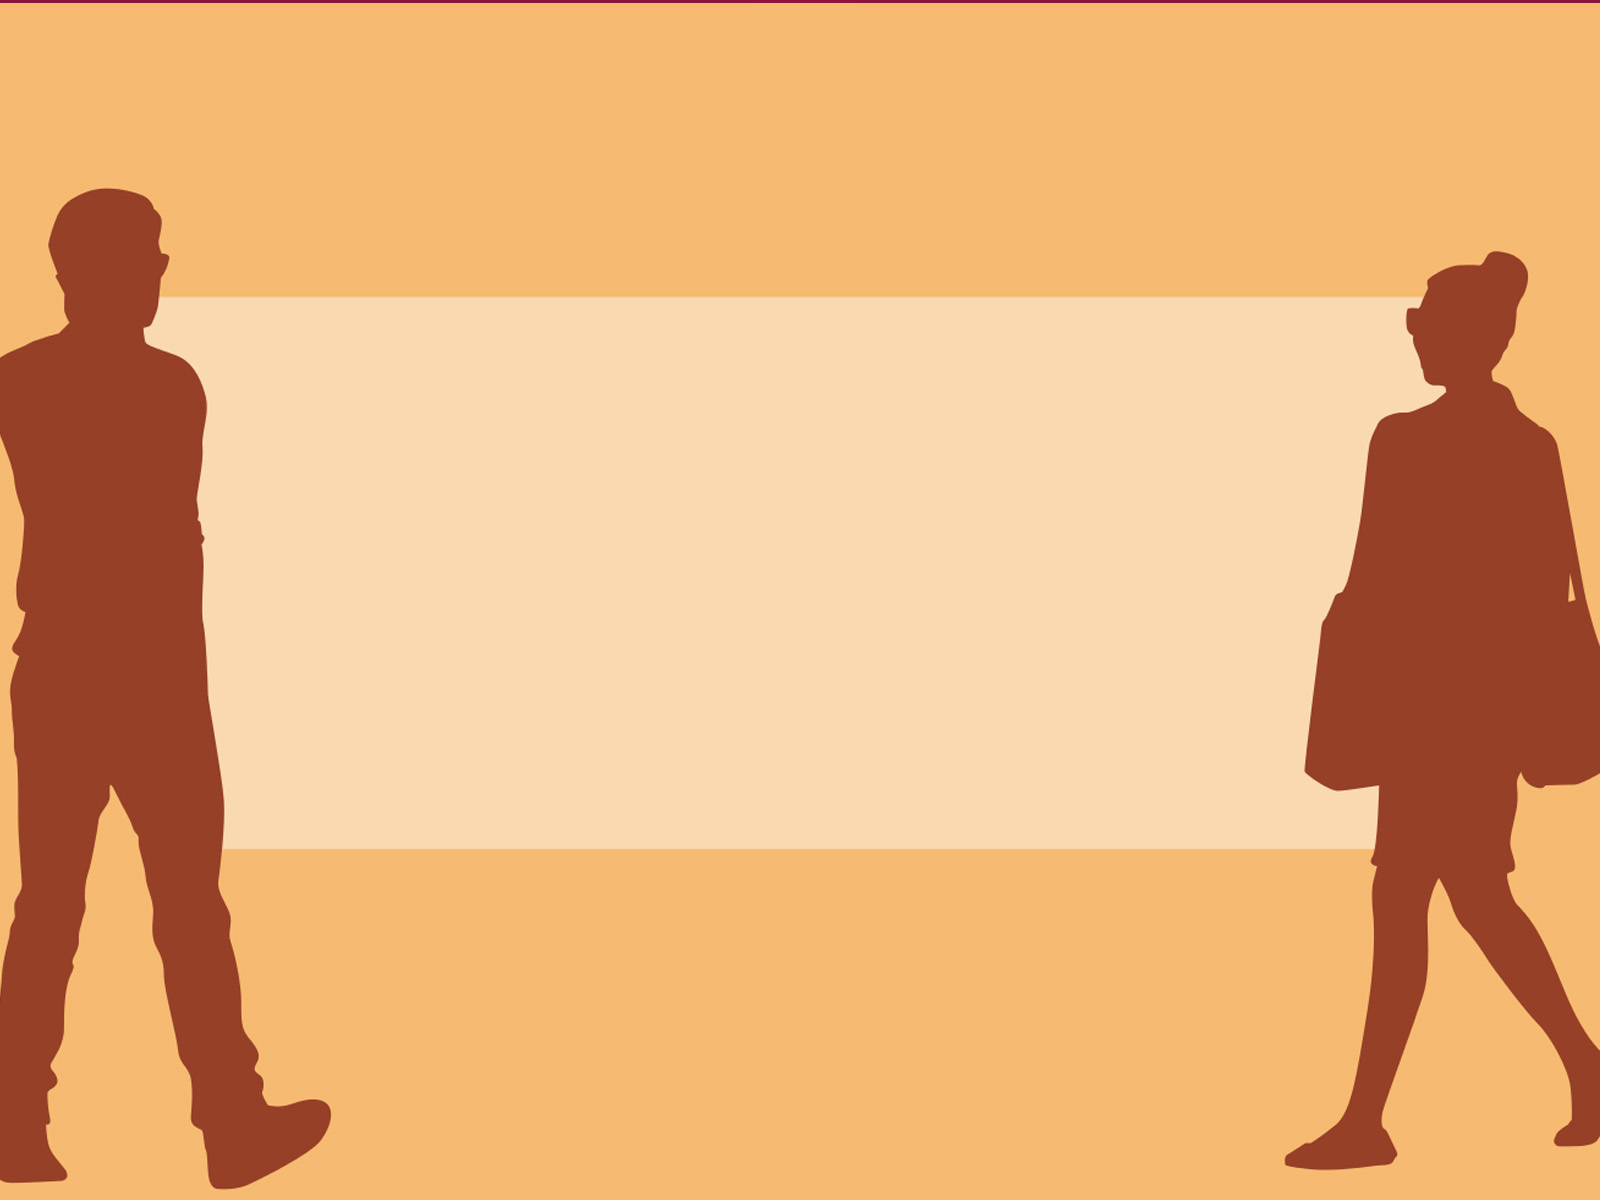 Walking People Silhouette Backgrounds